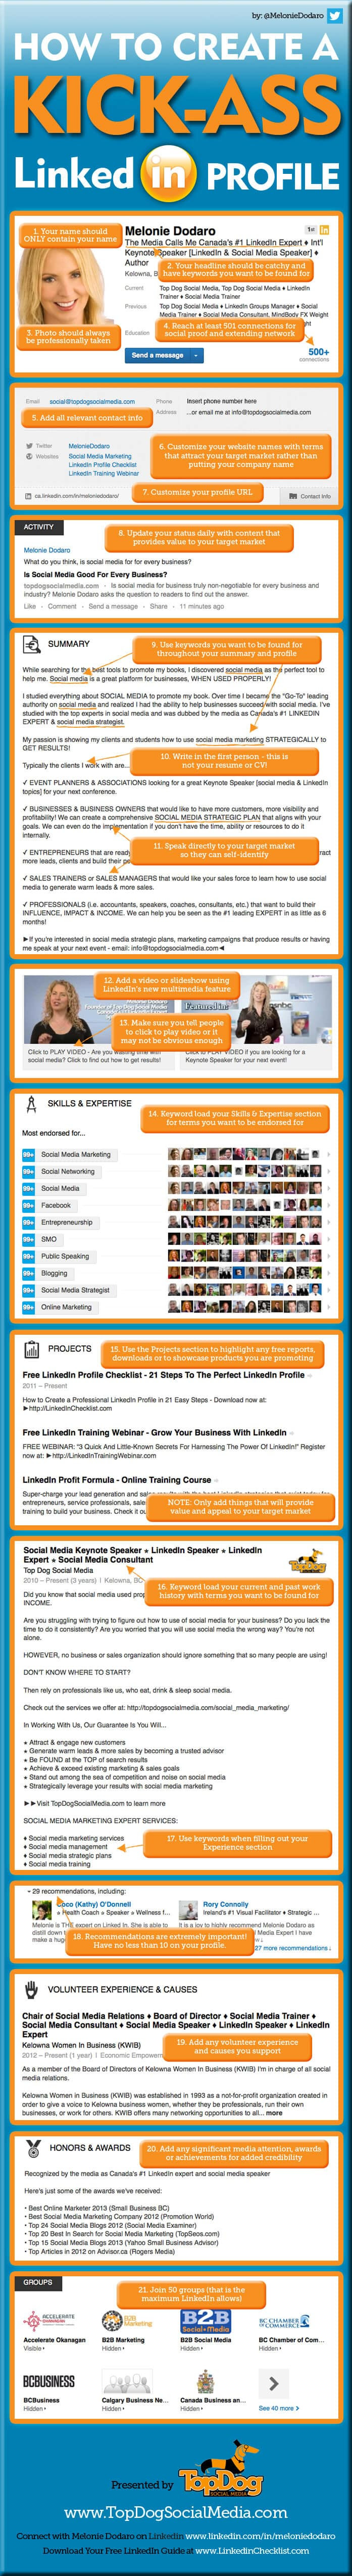 Best Practices On How To Make A Perfect LinkedIn Profile ...